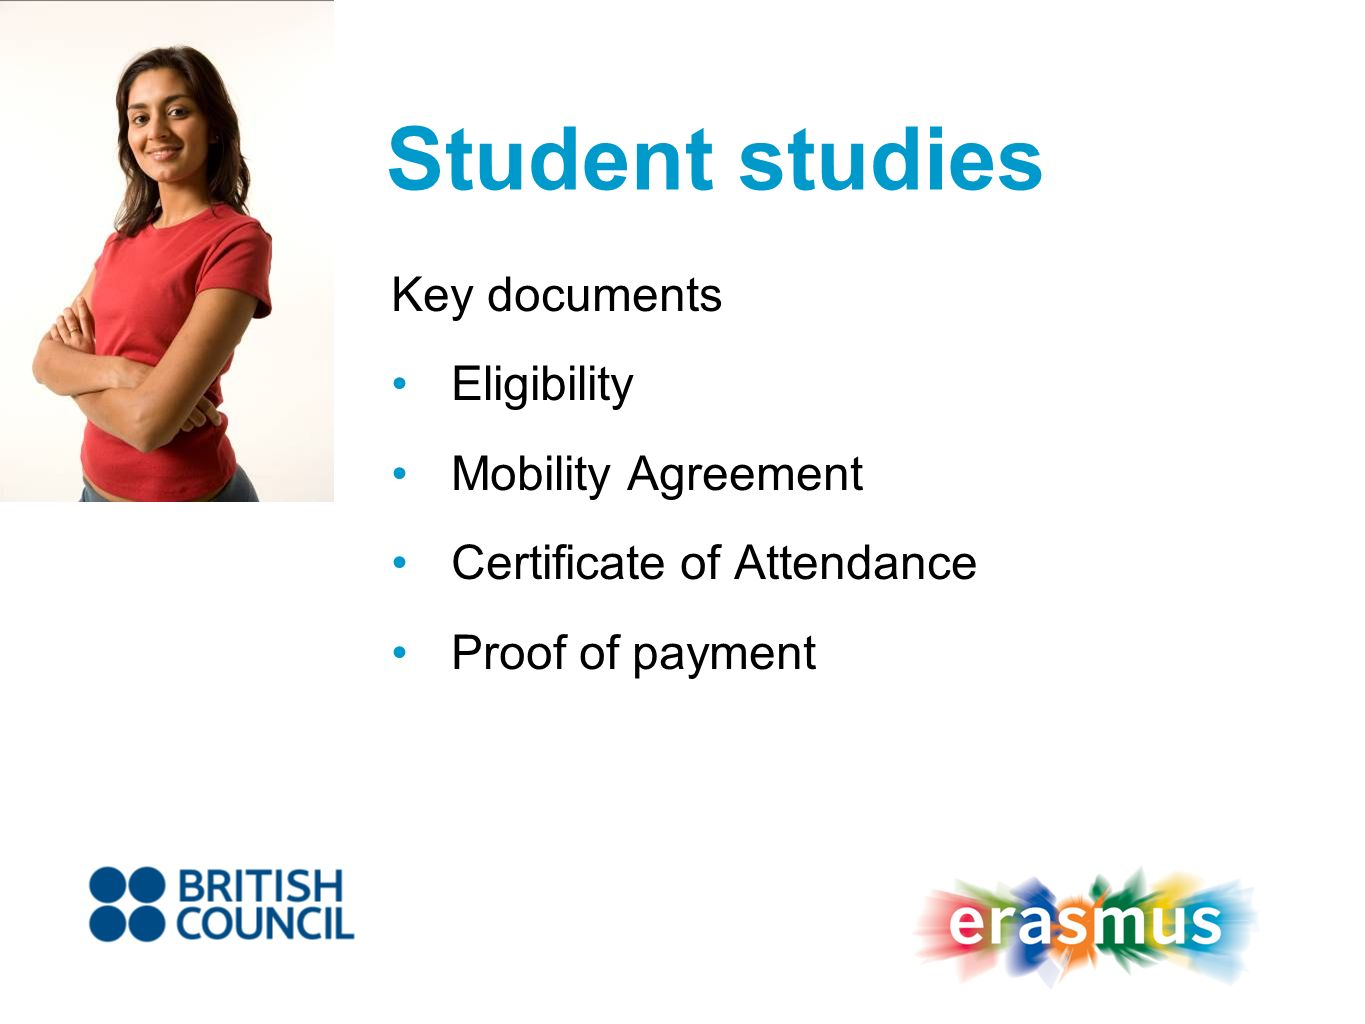 Student studies Key documents Eligibility Mobility Agreement Certificate of Attendance Proof of payment